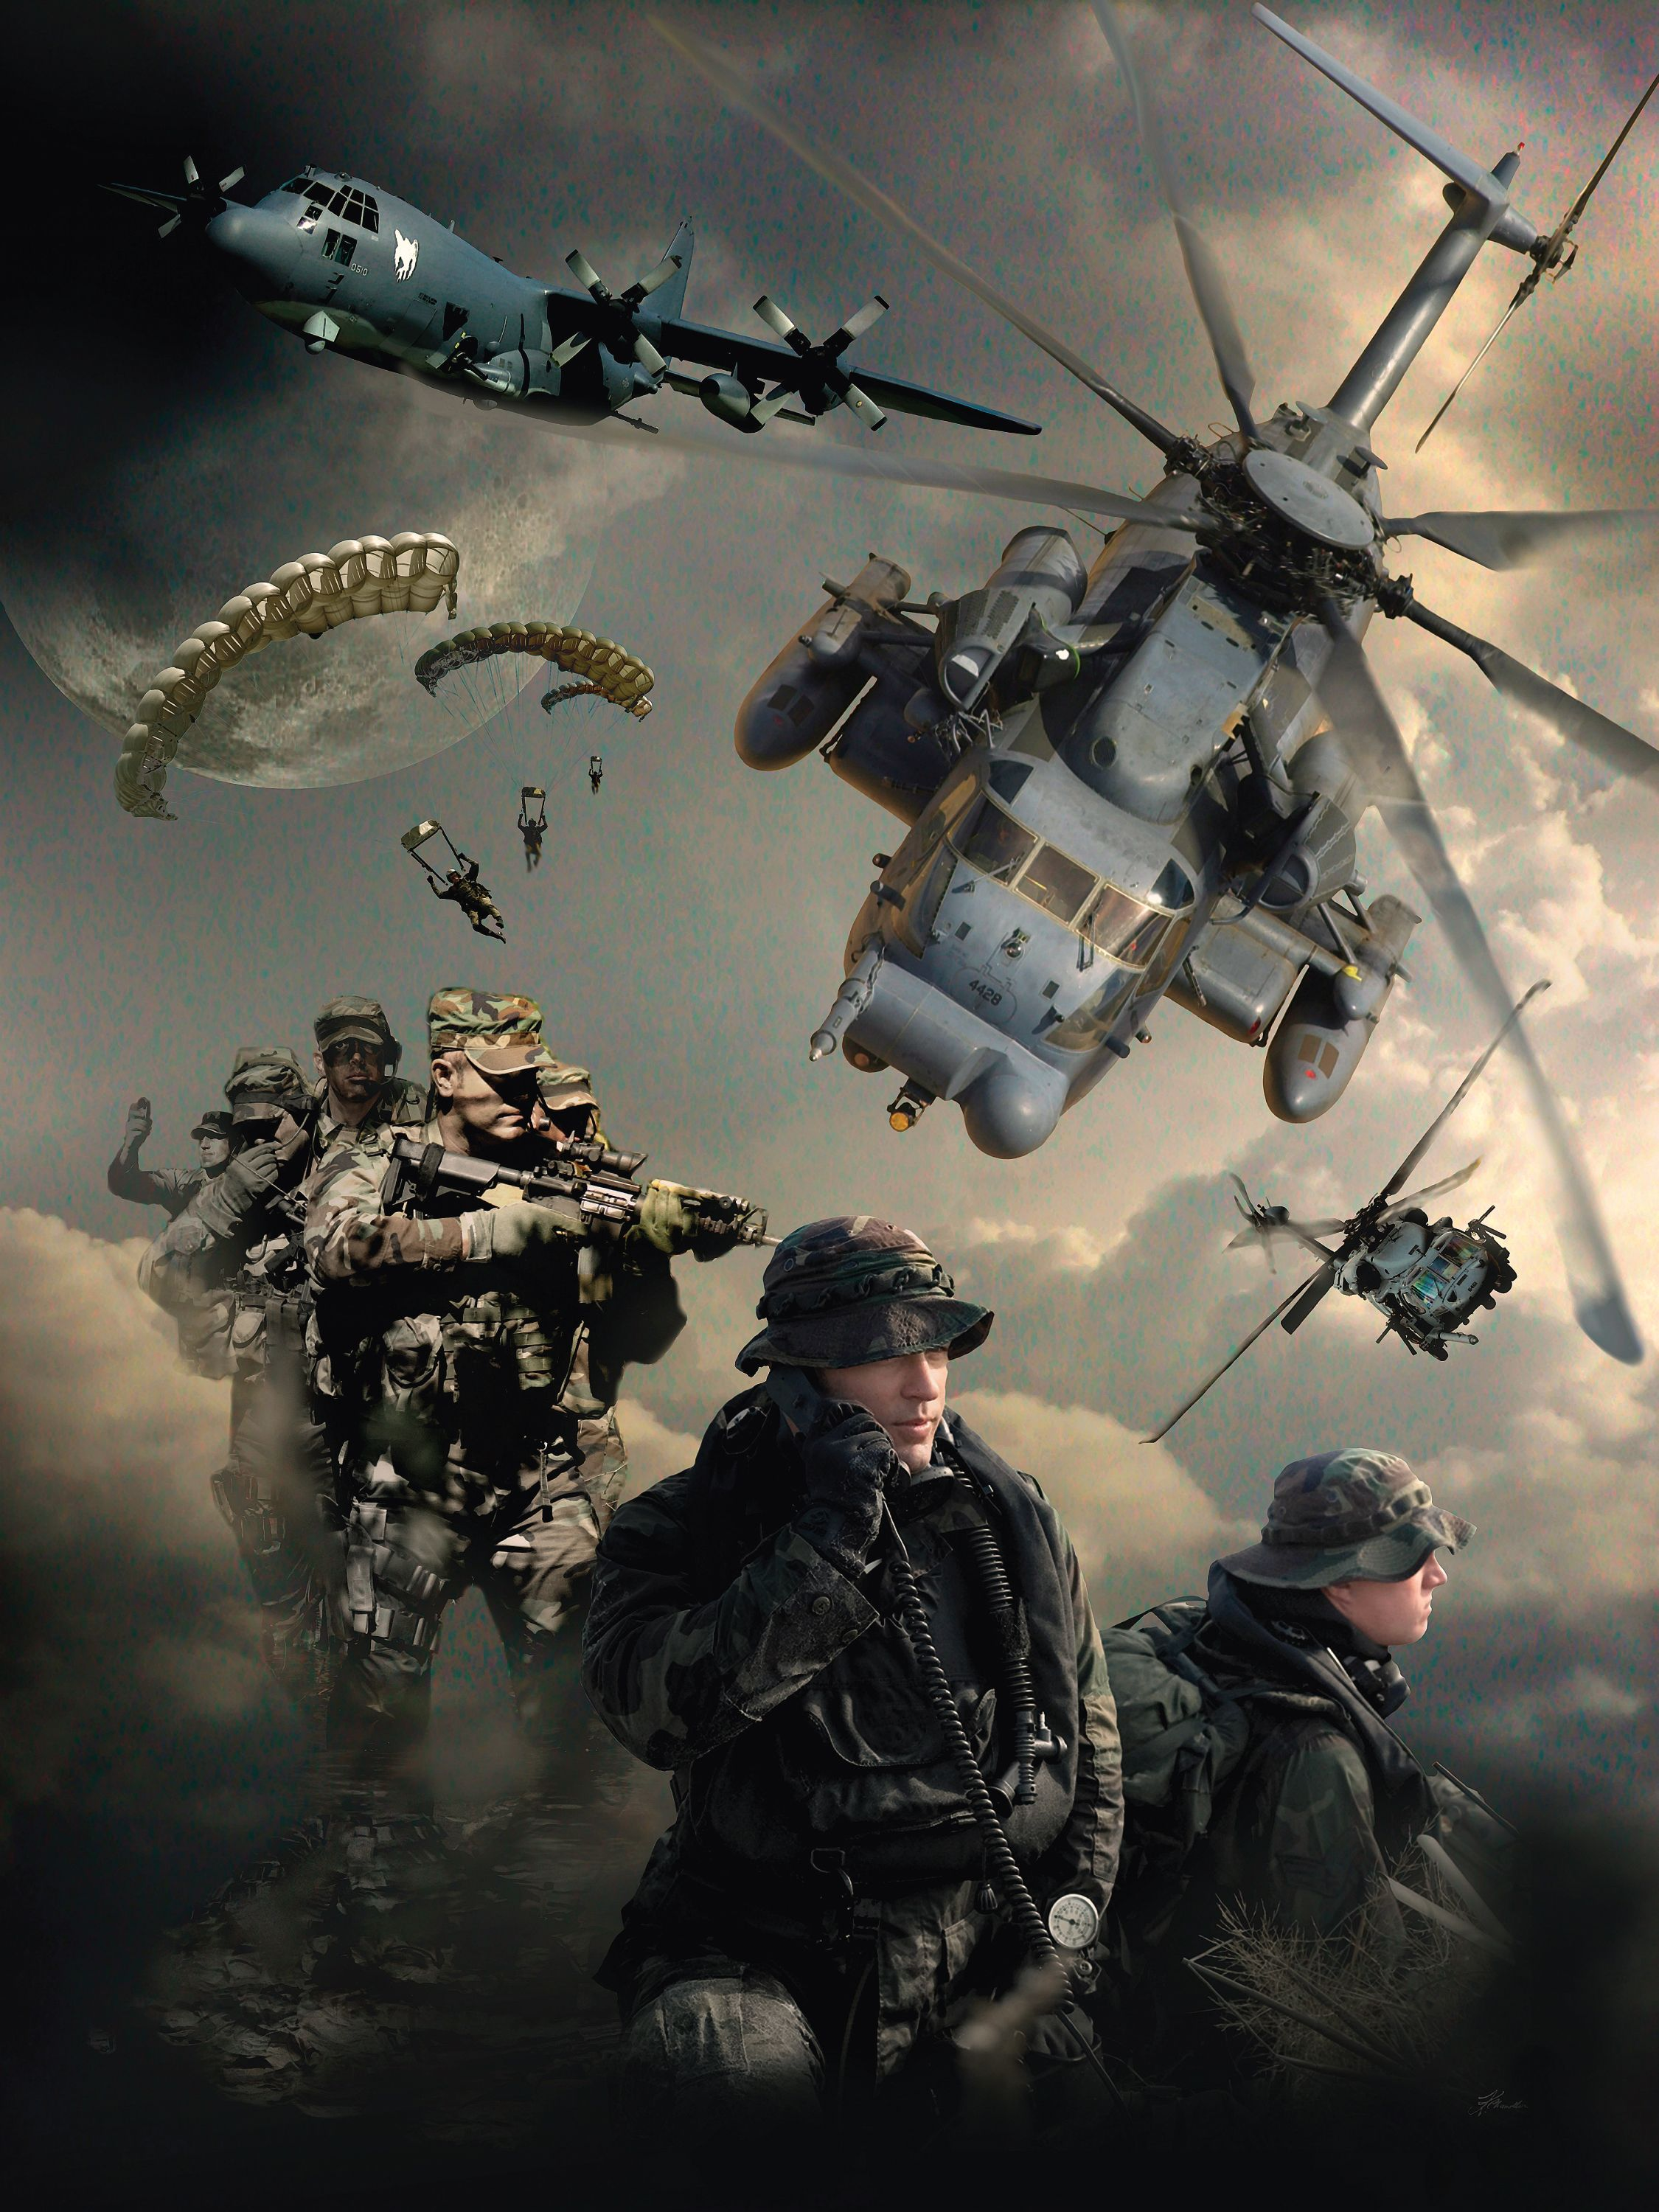 Airforce Special Ops Military Pinterest Special ops